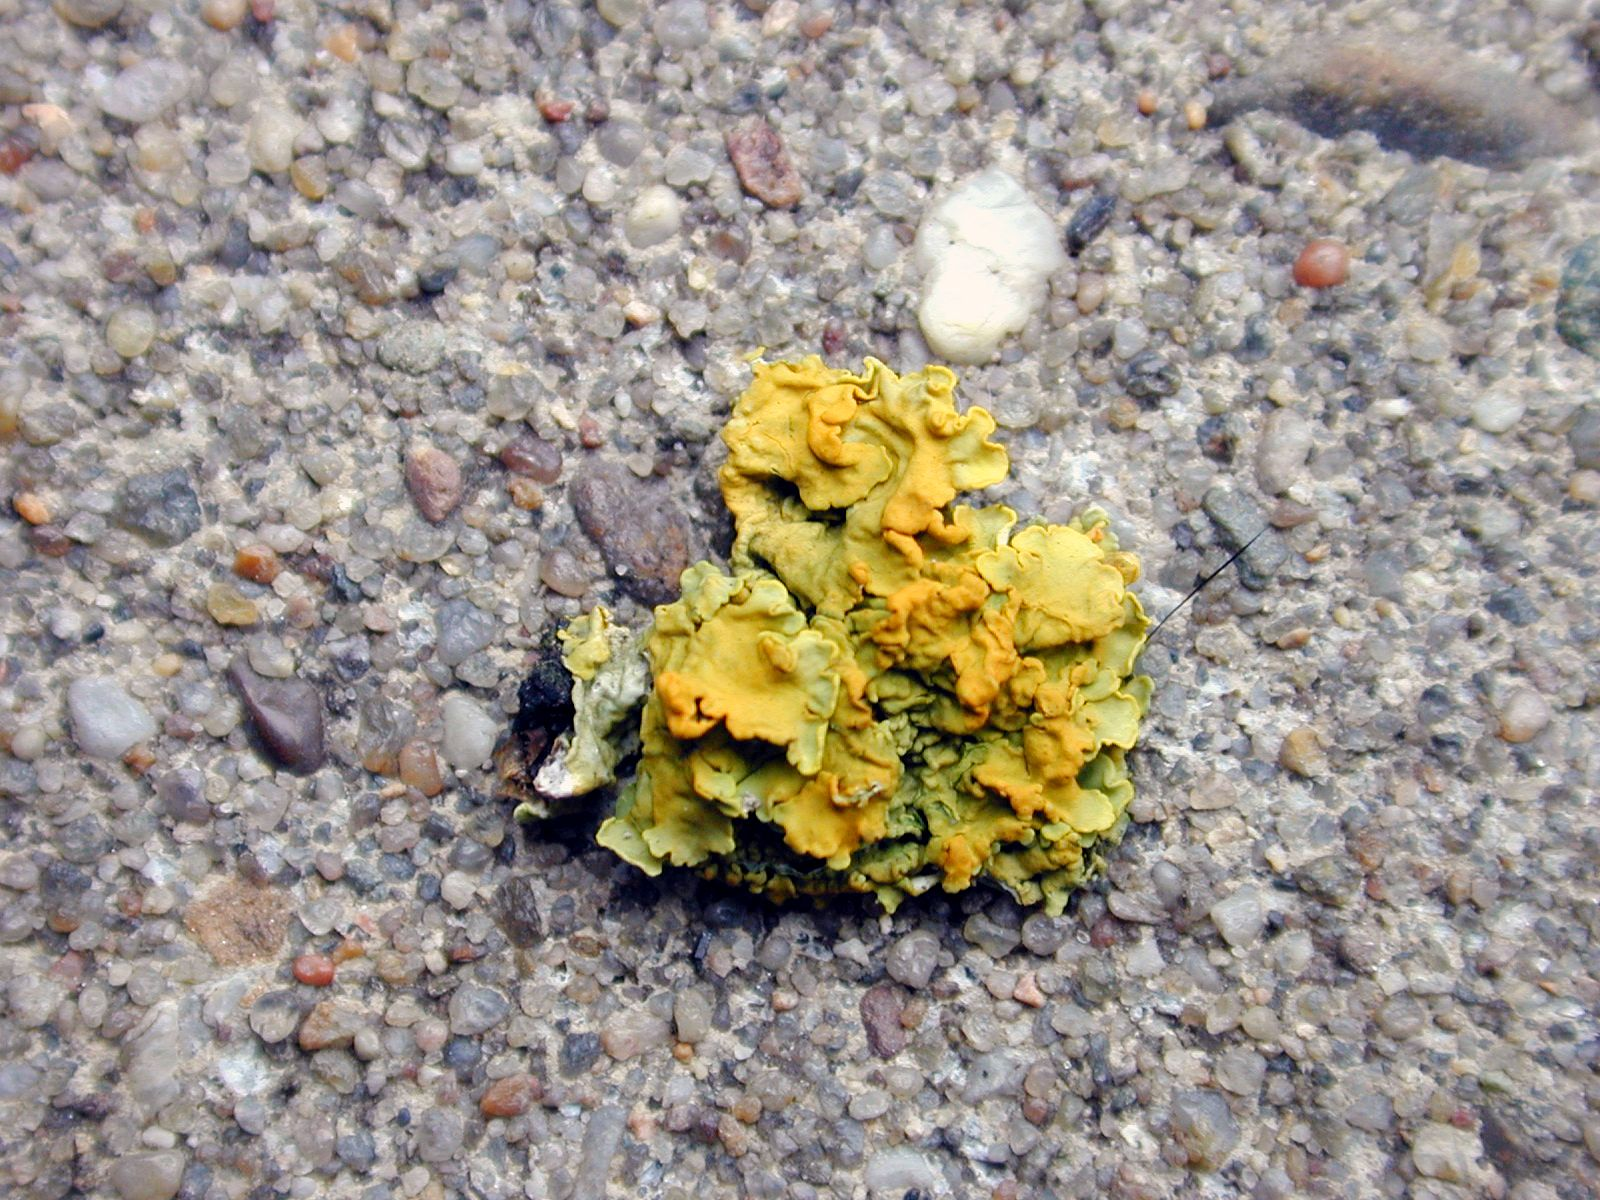 moss little small fungus yellow growing ground pebbles